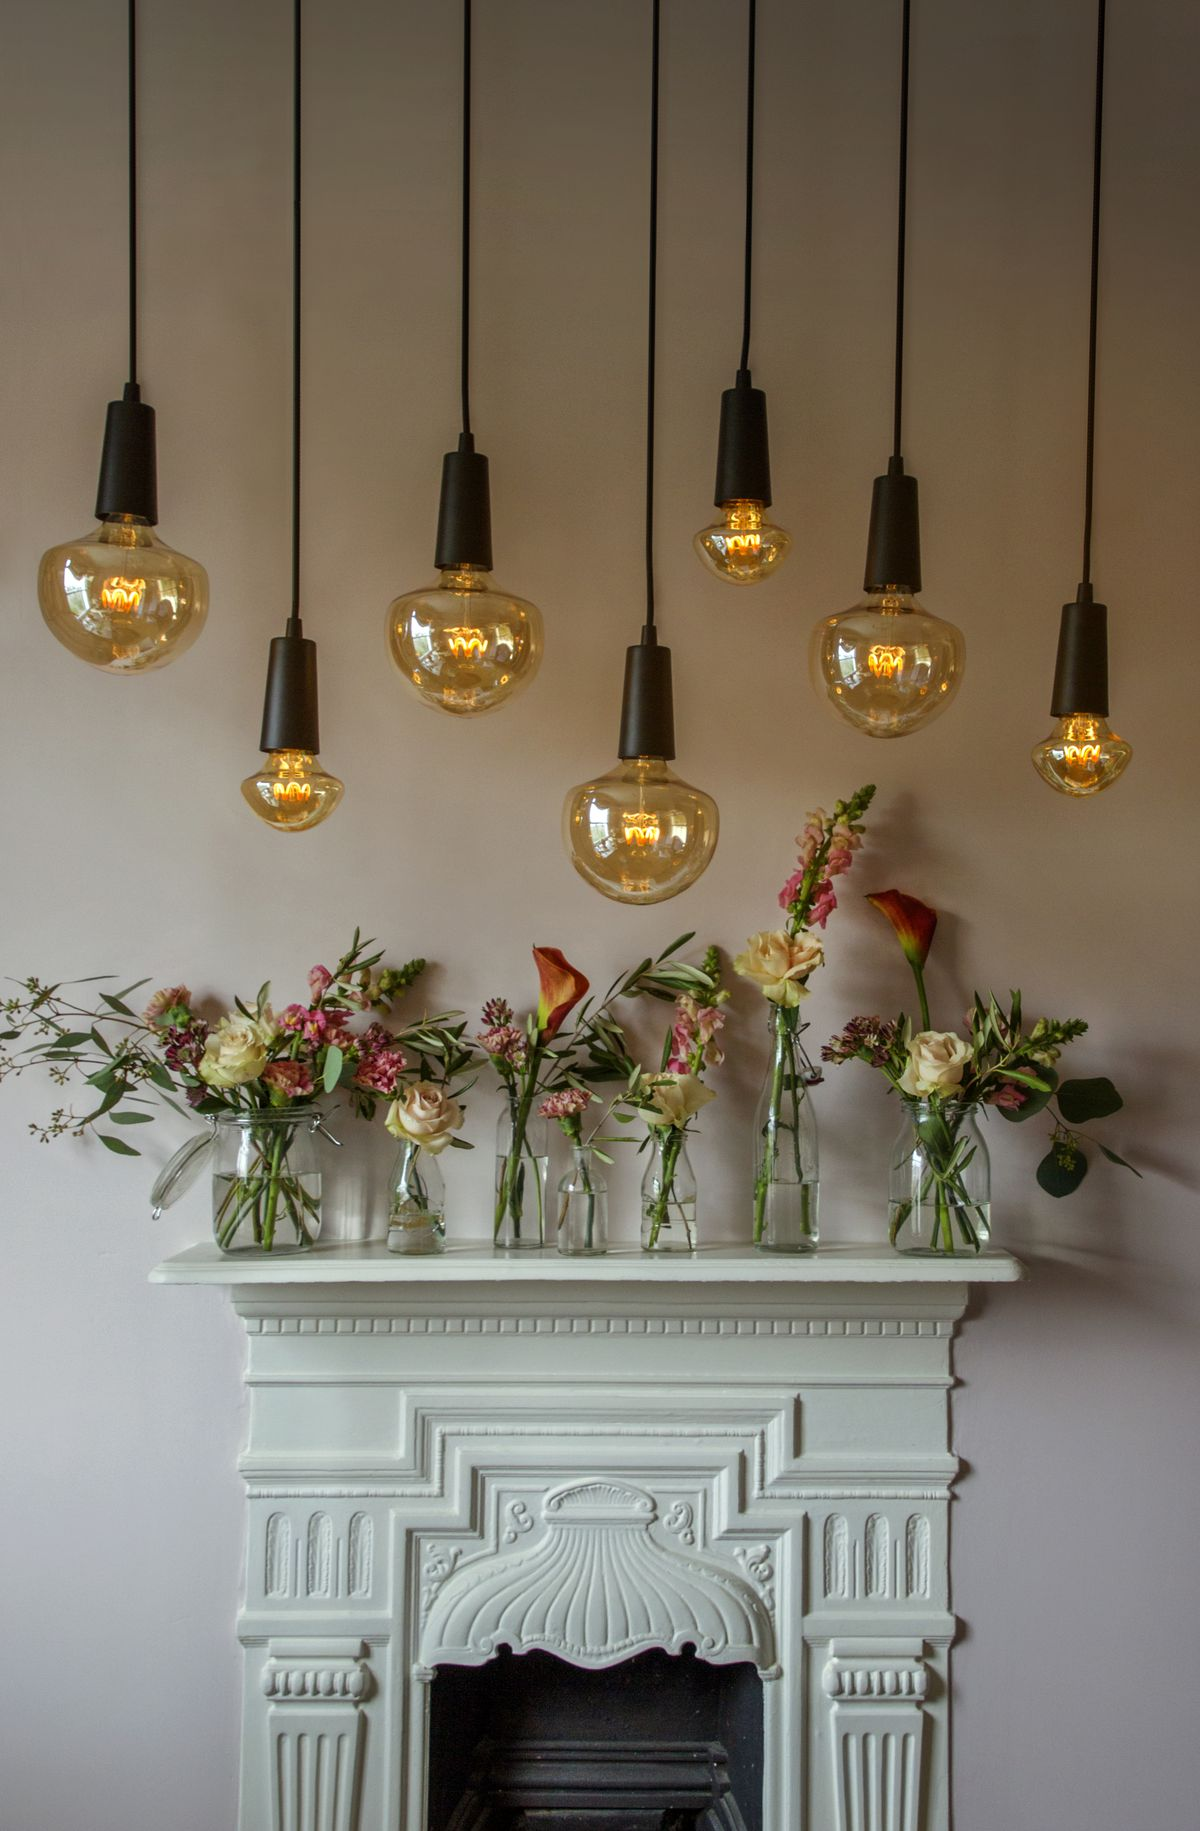 Lights hanging over fireplace mantle